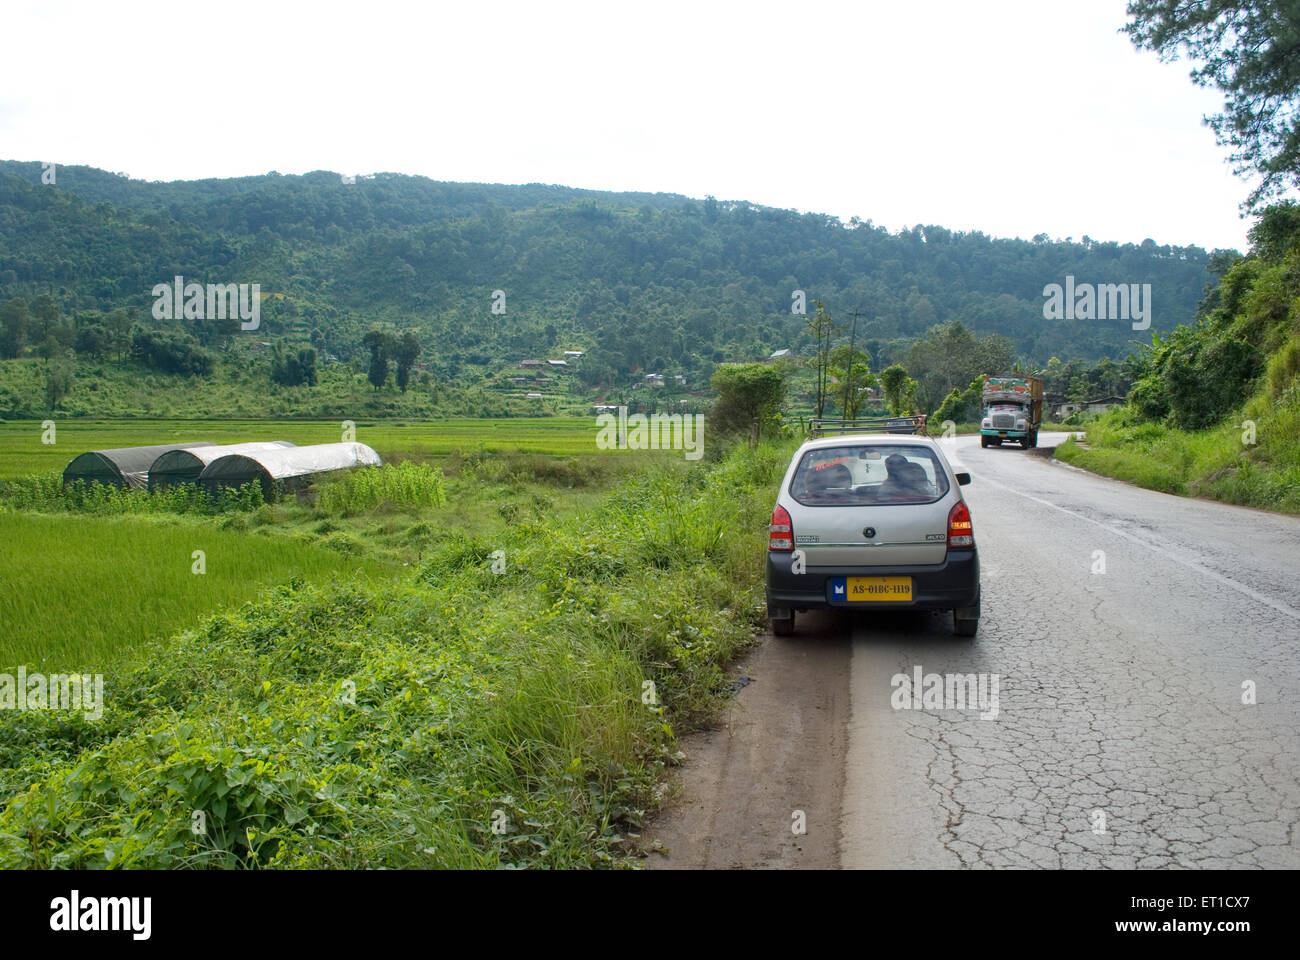 Vehicles on road ; Guwhati ; Assam ; India - Stock Image